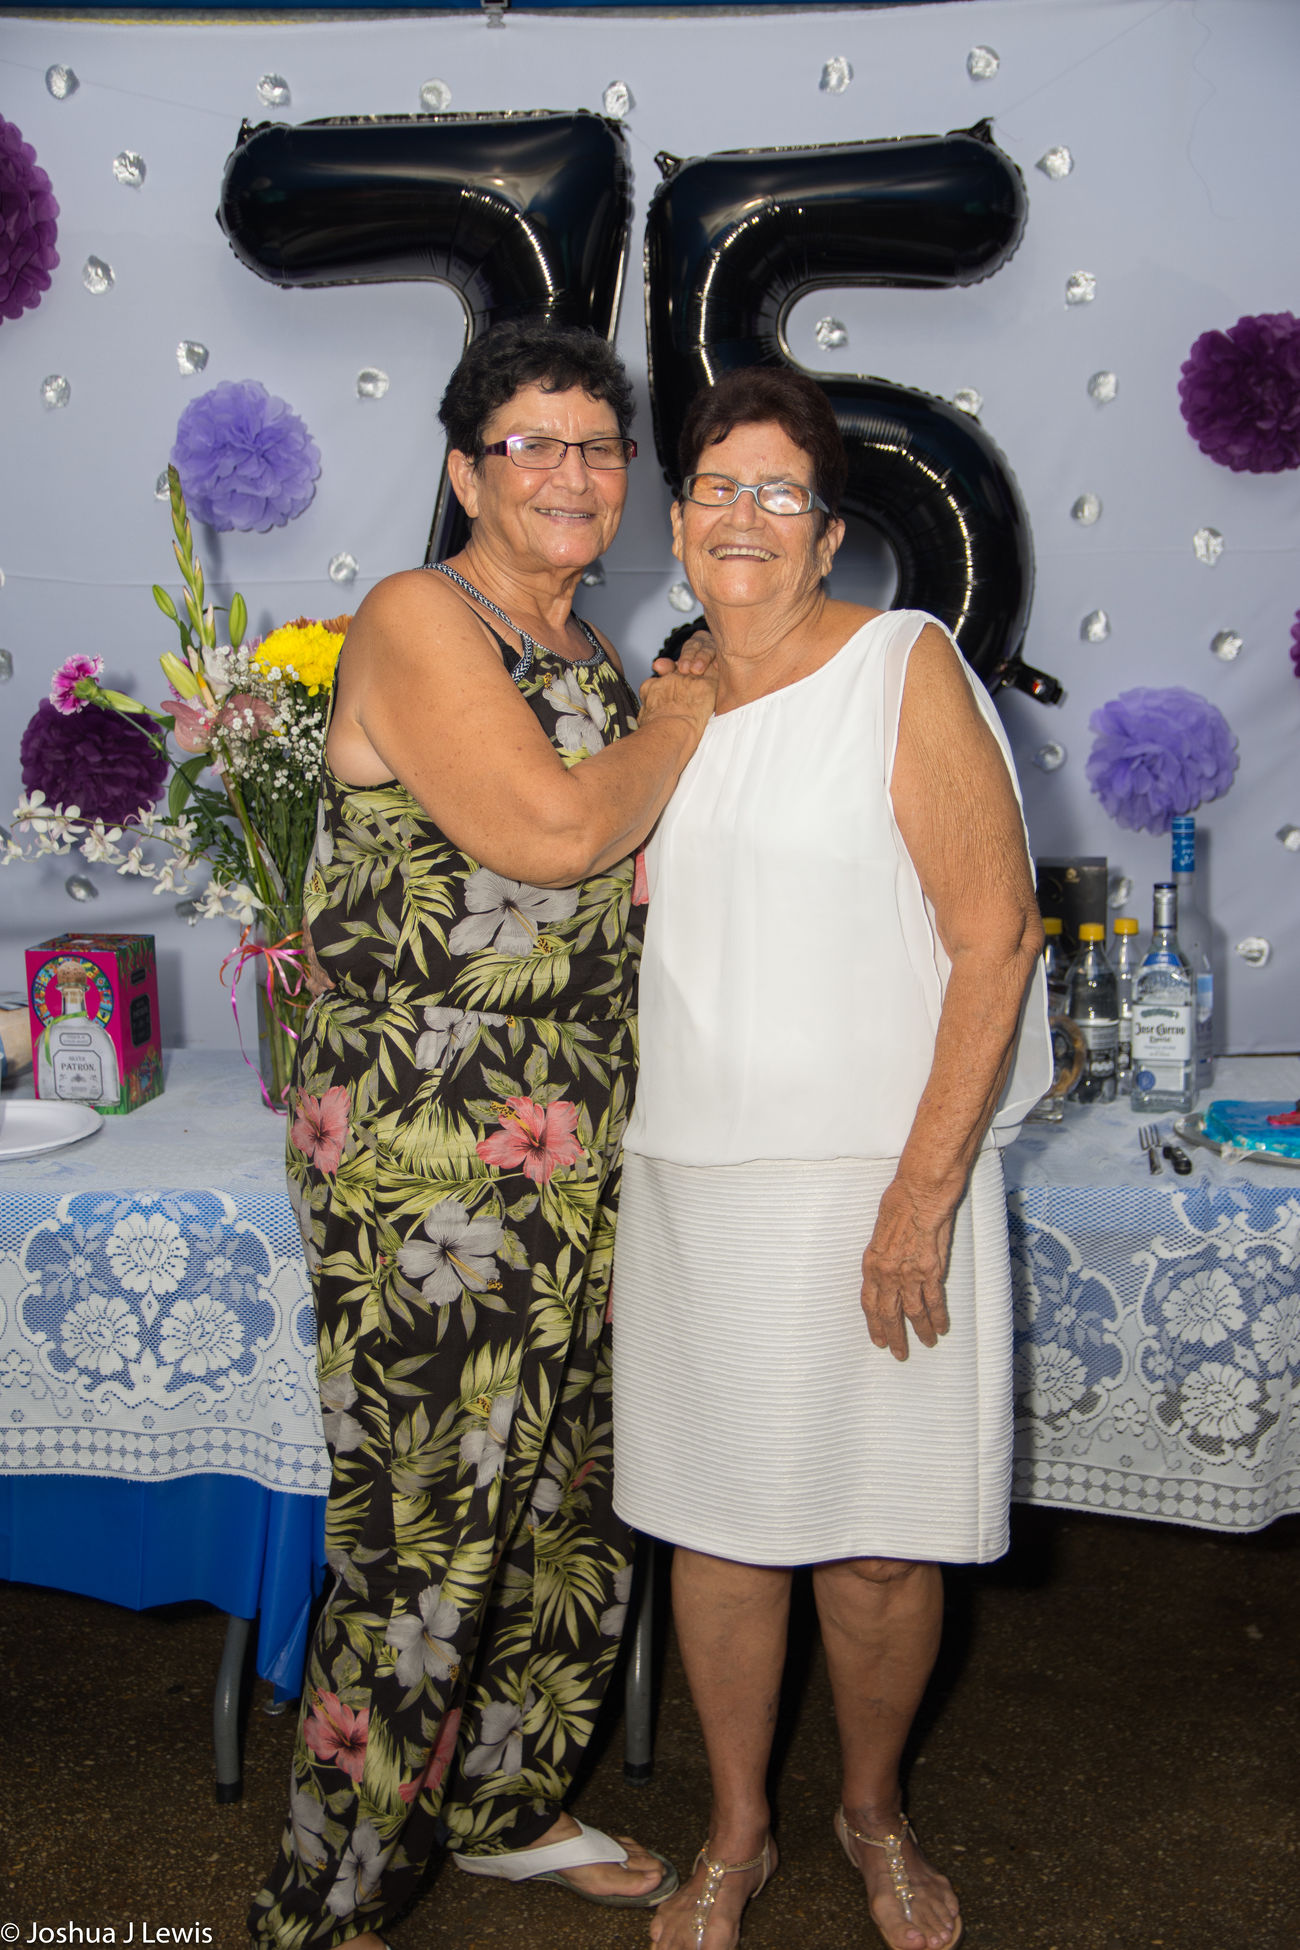 Birthdayparty Family Time Beautiful People Stillife Togetherness Caribbean Trinidad And Tobago Laughing Smiling Beautiful